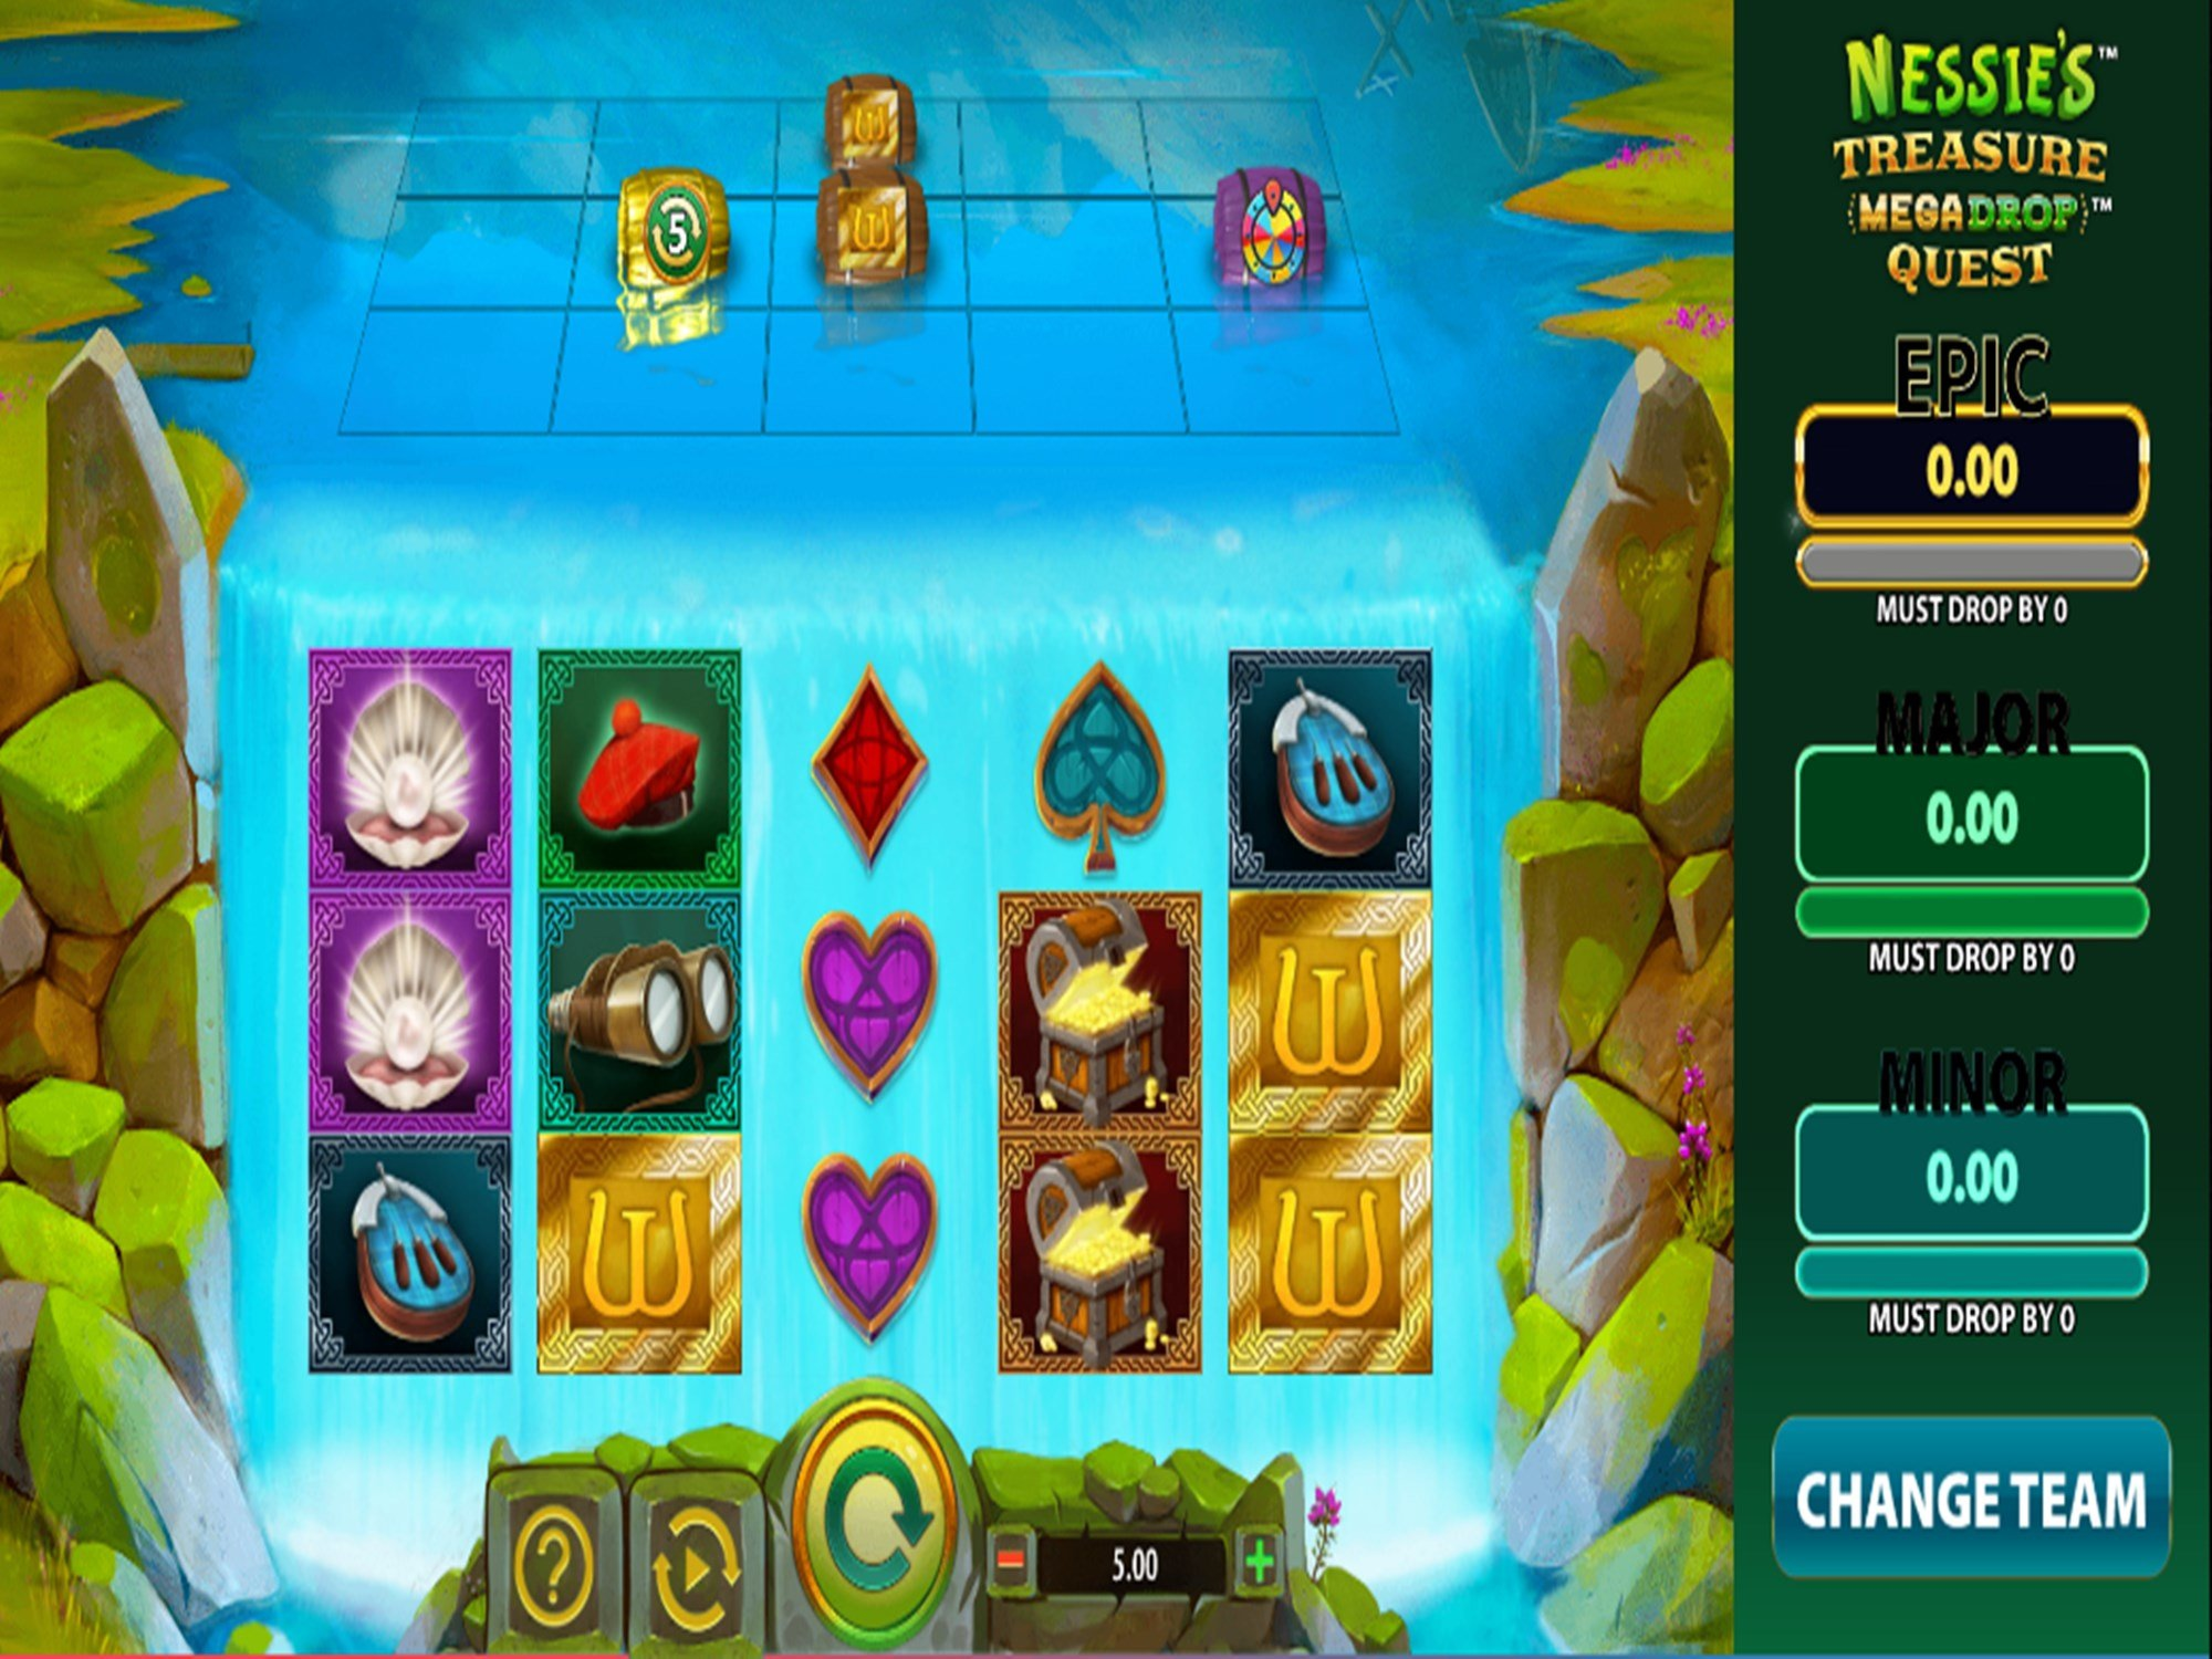 The Nessie's Treasure Mega Drop Quest Online Slot Demo Game by Red7 Mobile